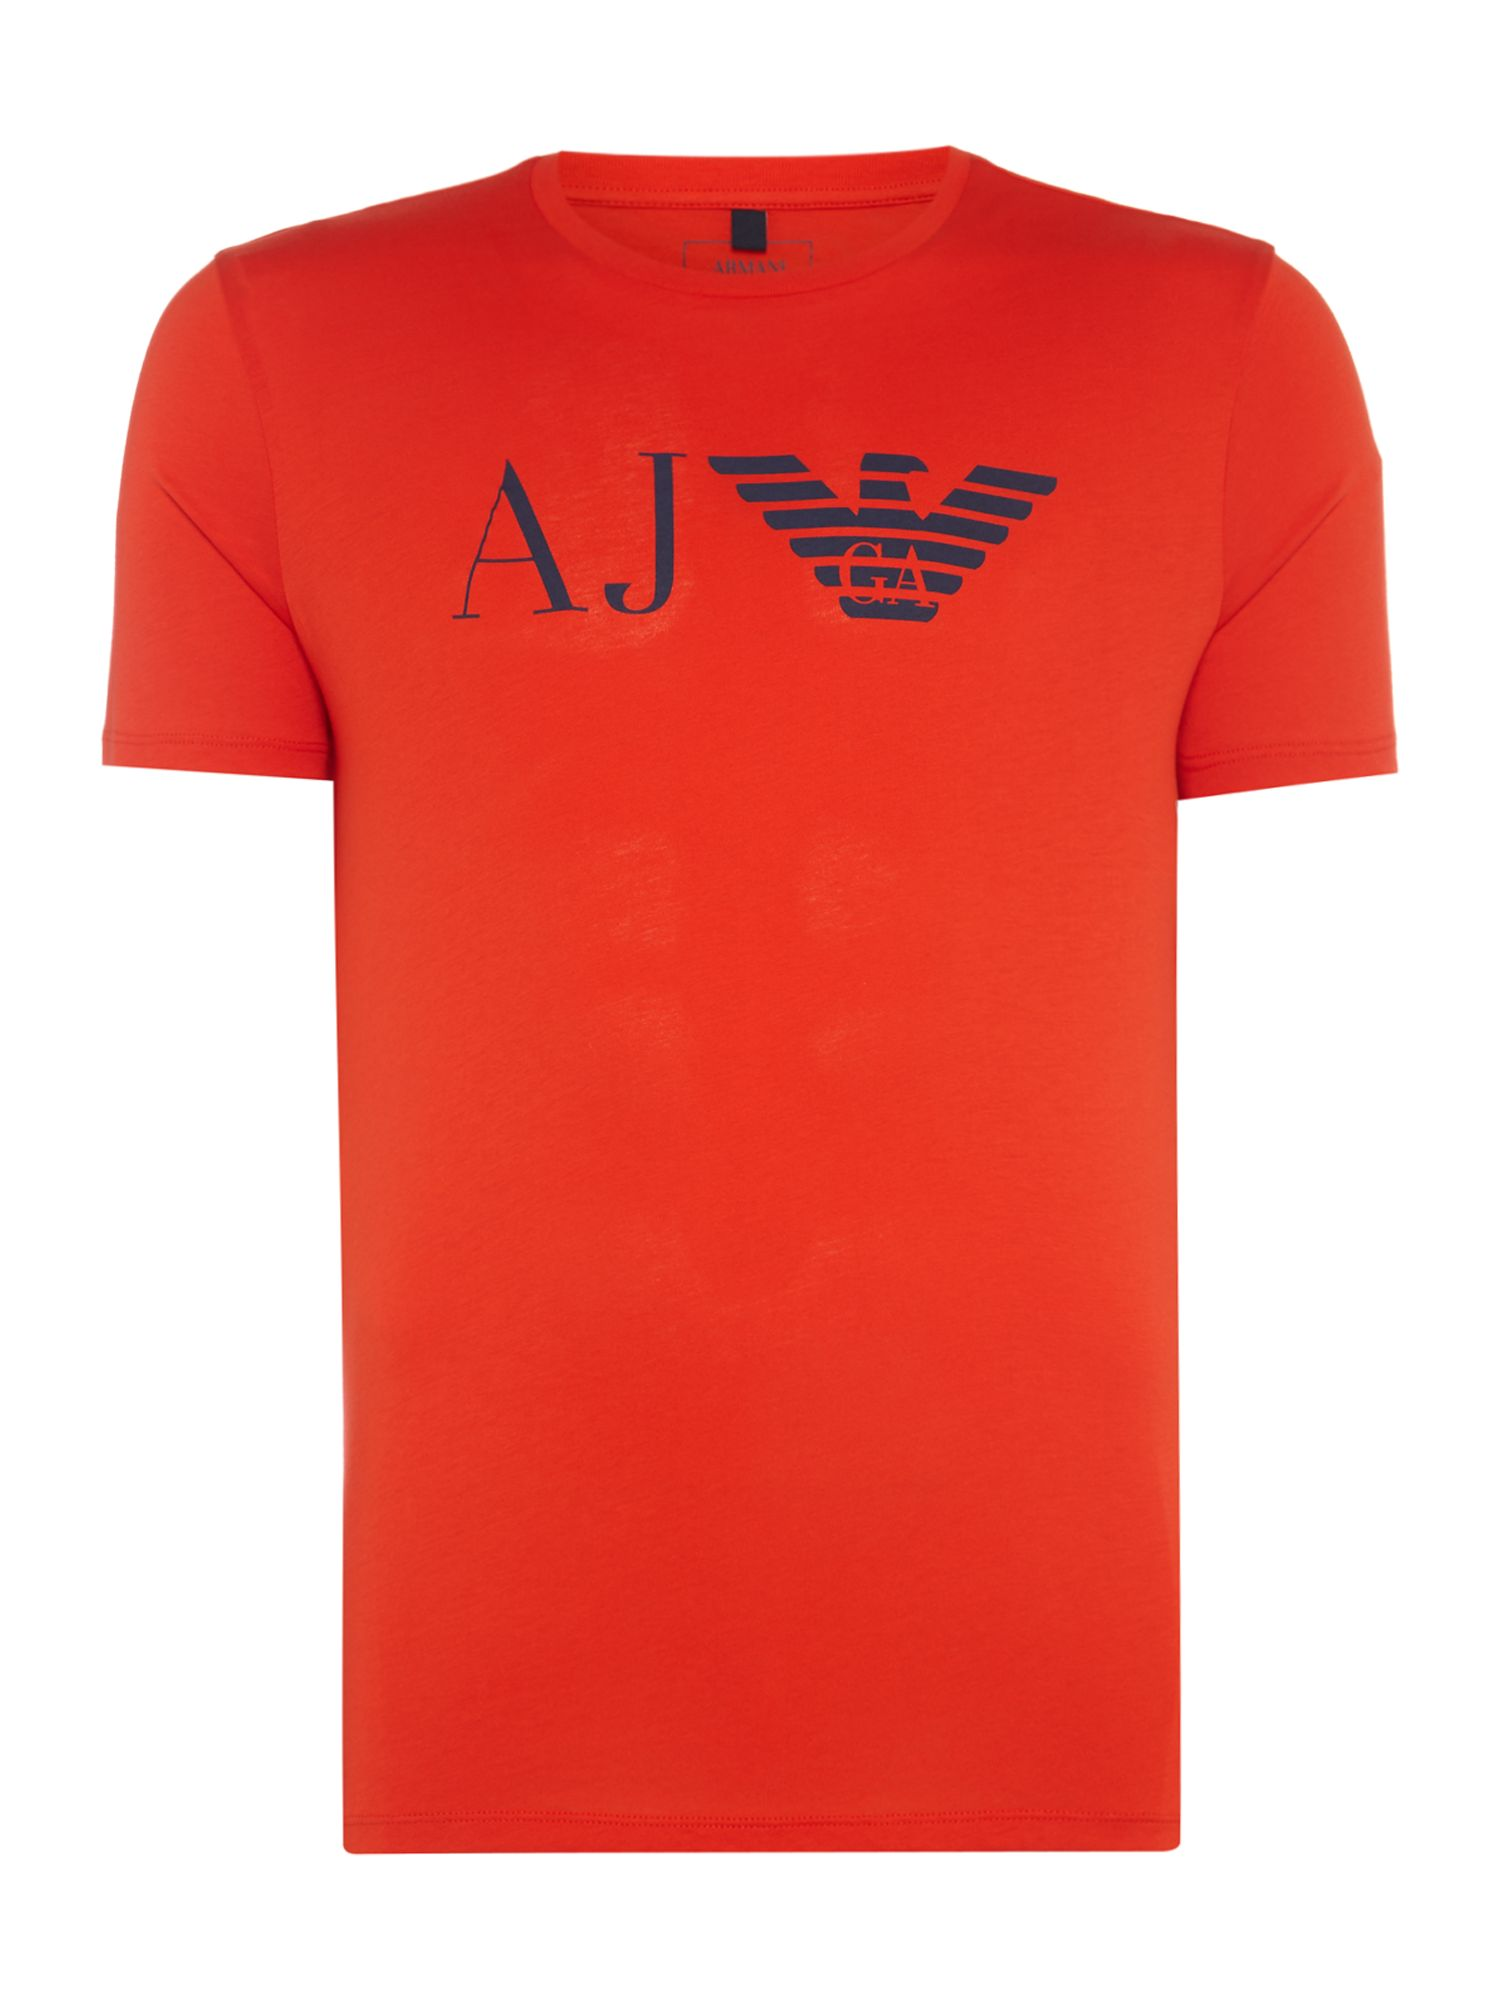 Men's Armani Jeans Large AG Logo Crew Neck T-Shirt, Red